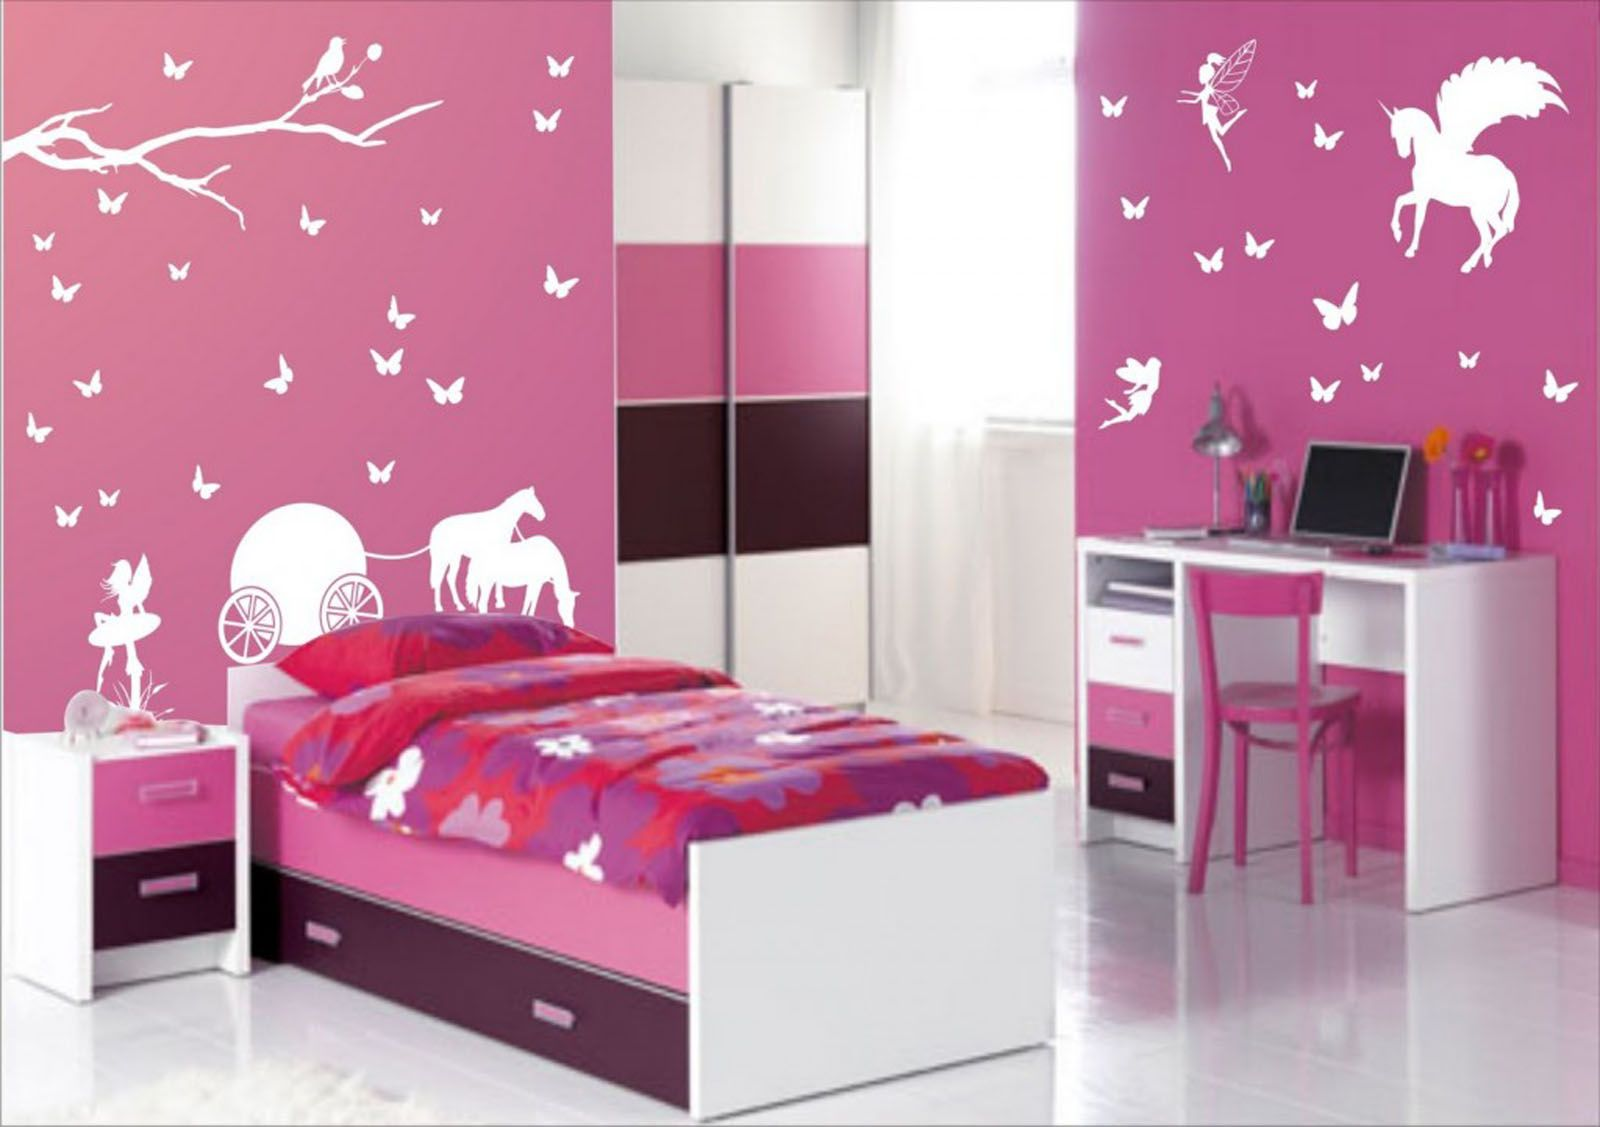 dream bedroom for teenage girls tumblr teal pink dream bedrooms for teenage girls tumblr ideas bedroom